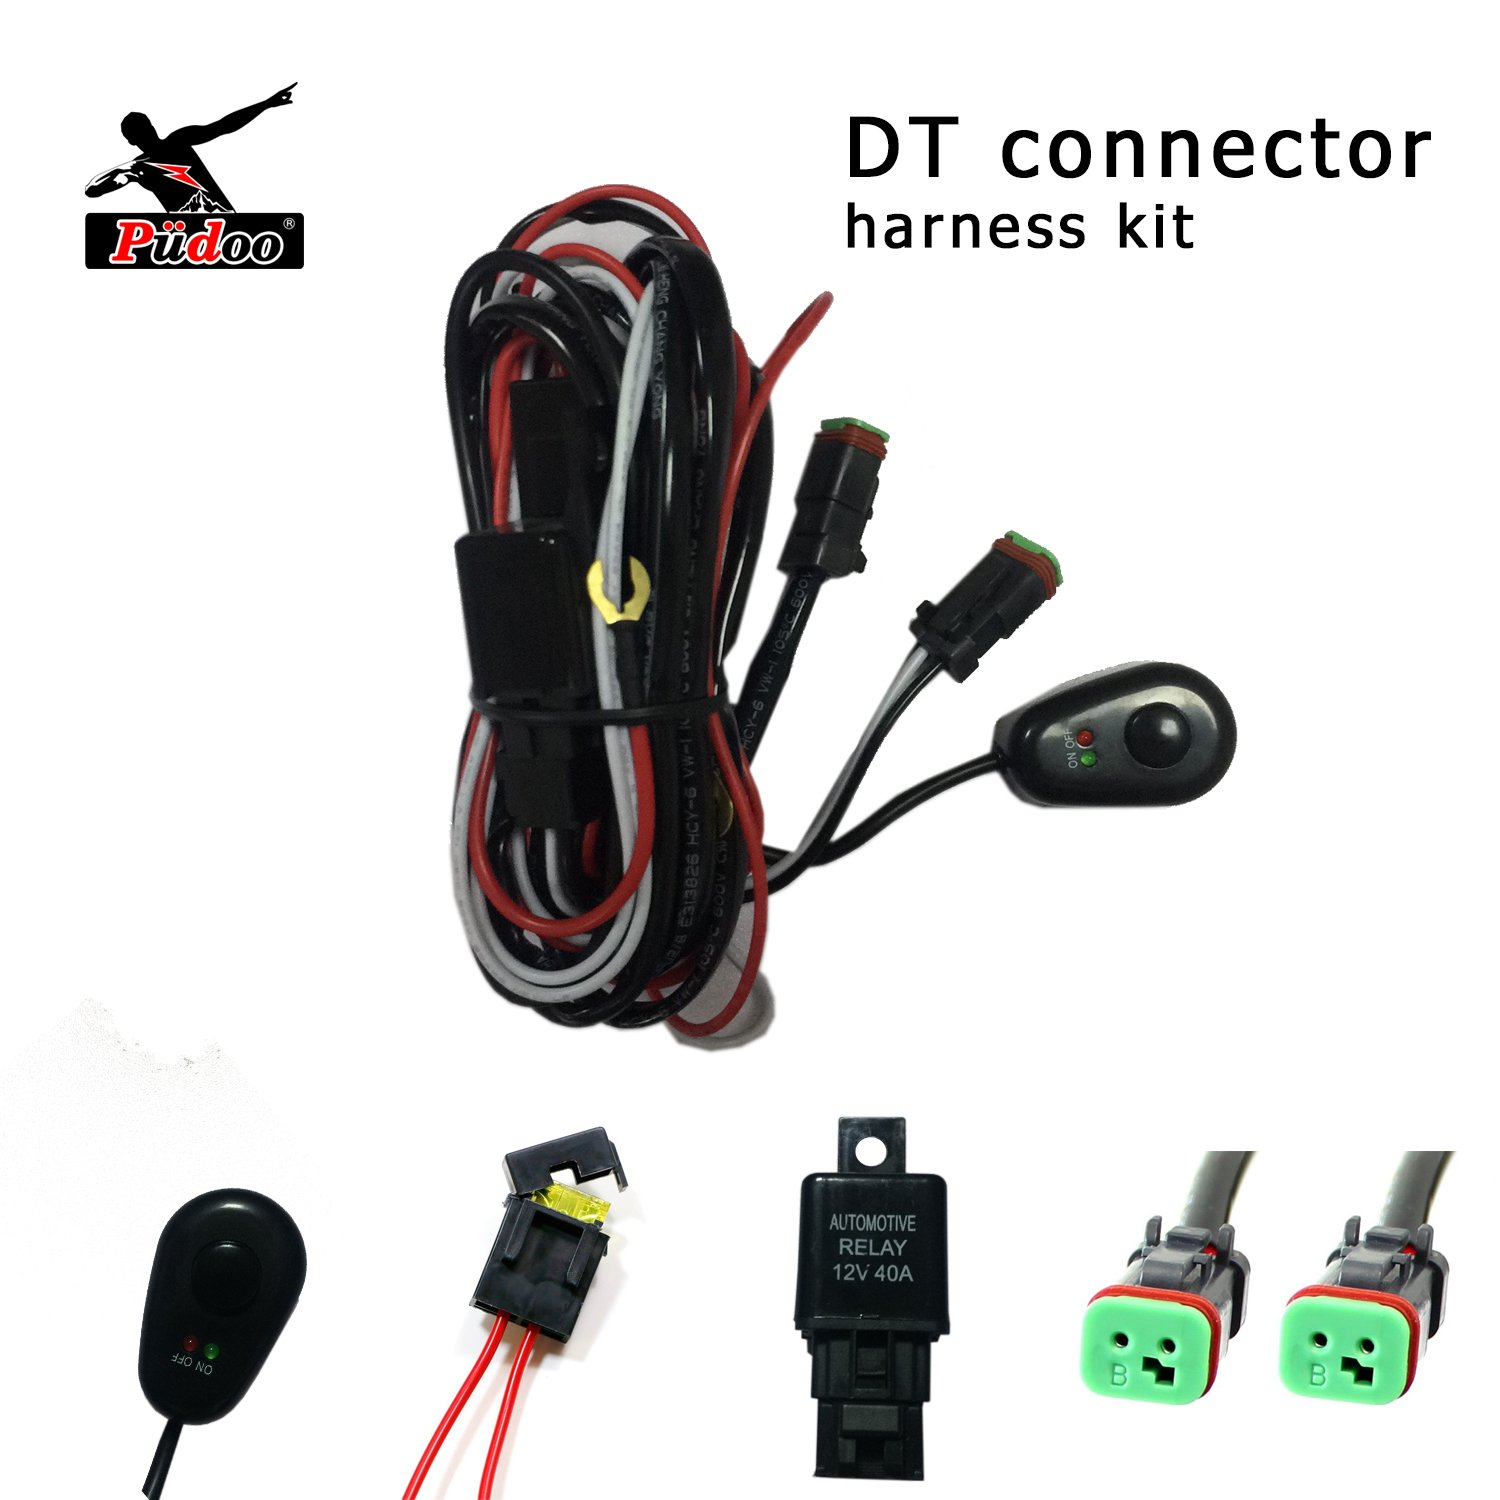 hight resolution of pudoo deutsch wiring harness kit 12v 40amp fuse relay on off switch for driving light